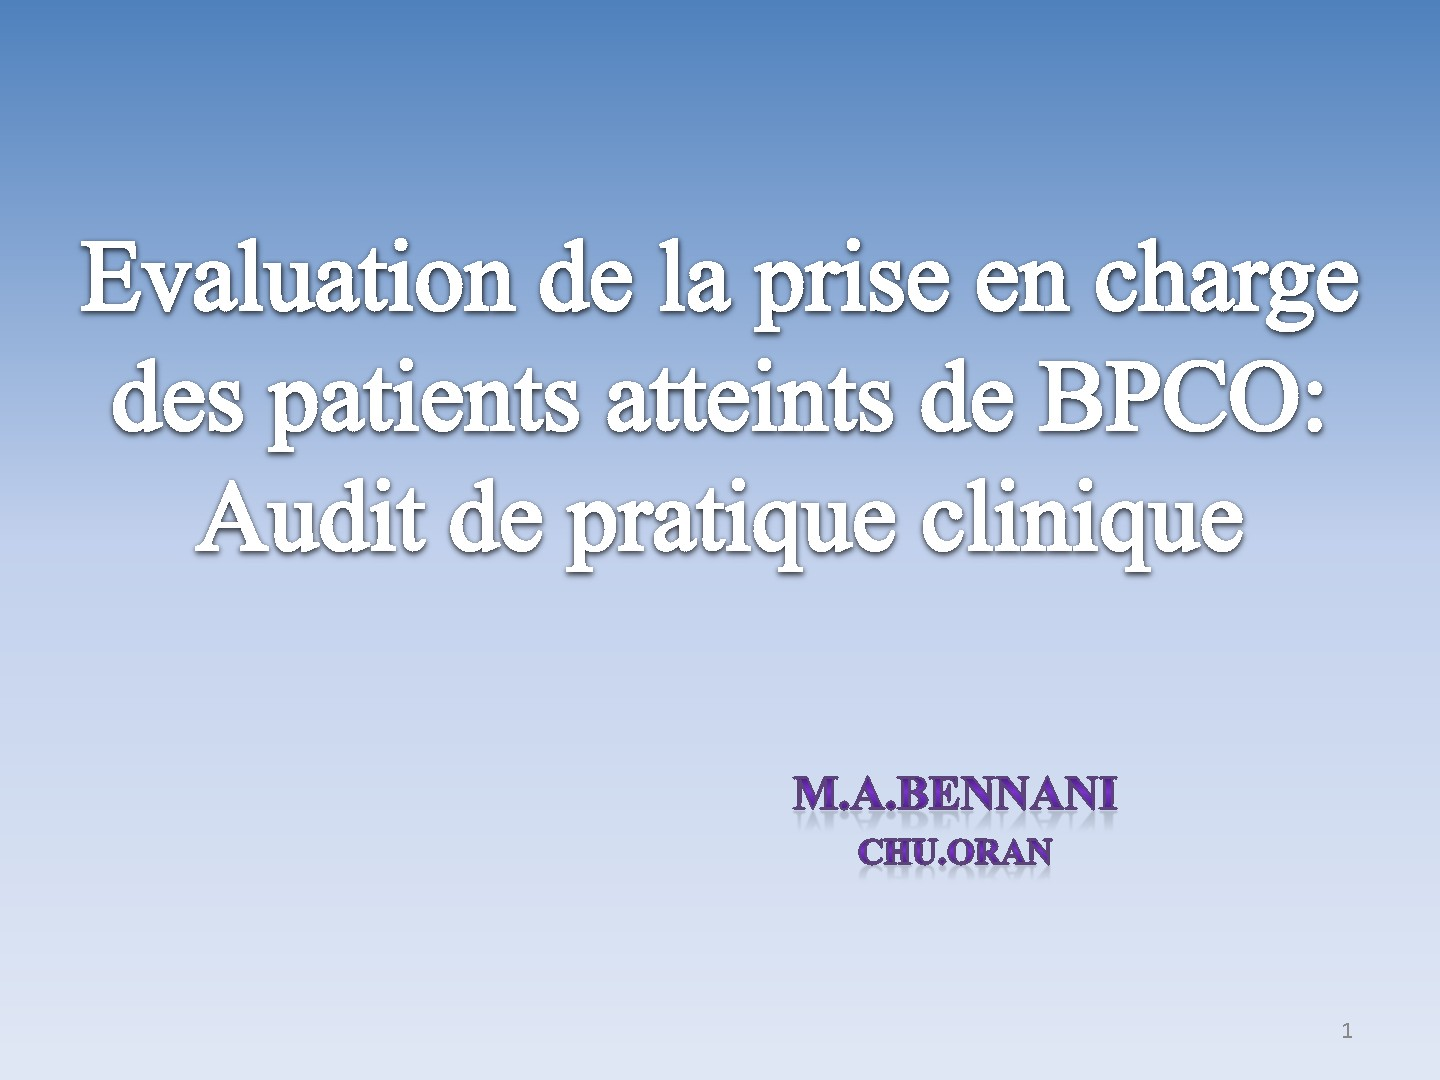 BPCO audit de la pratique clinique. M. A. BENNANI